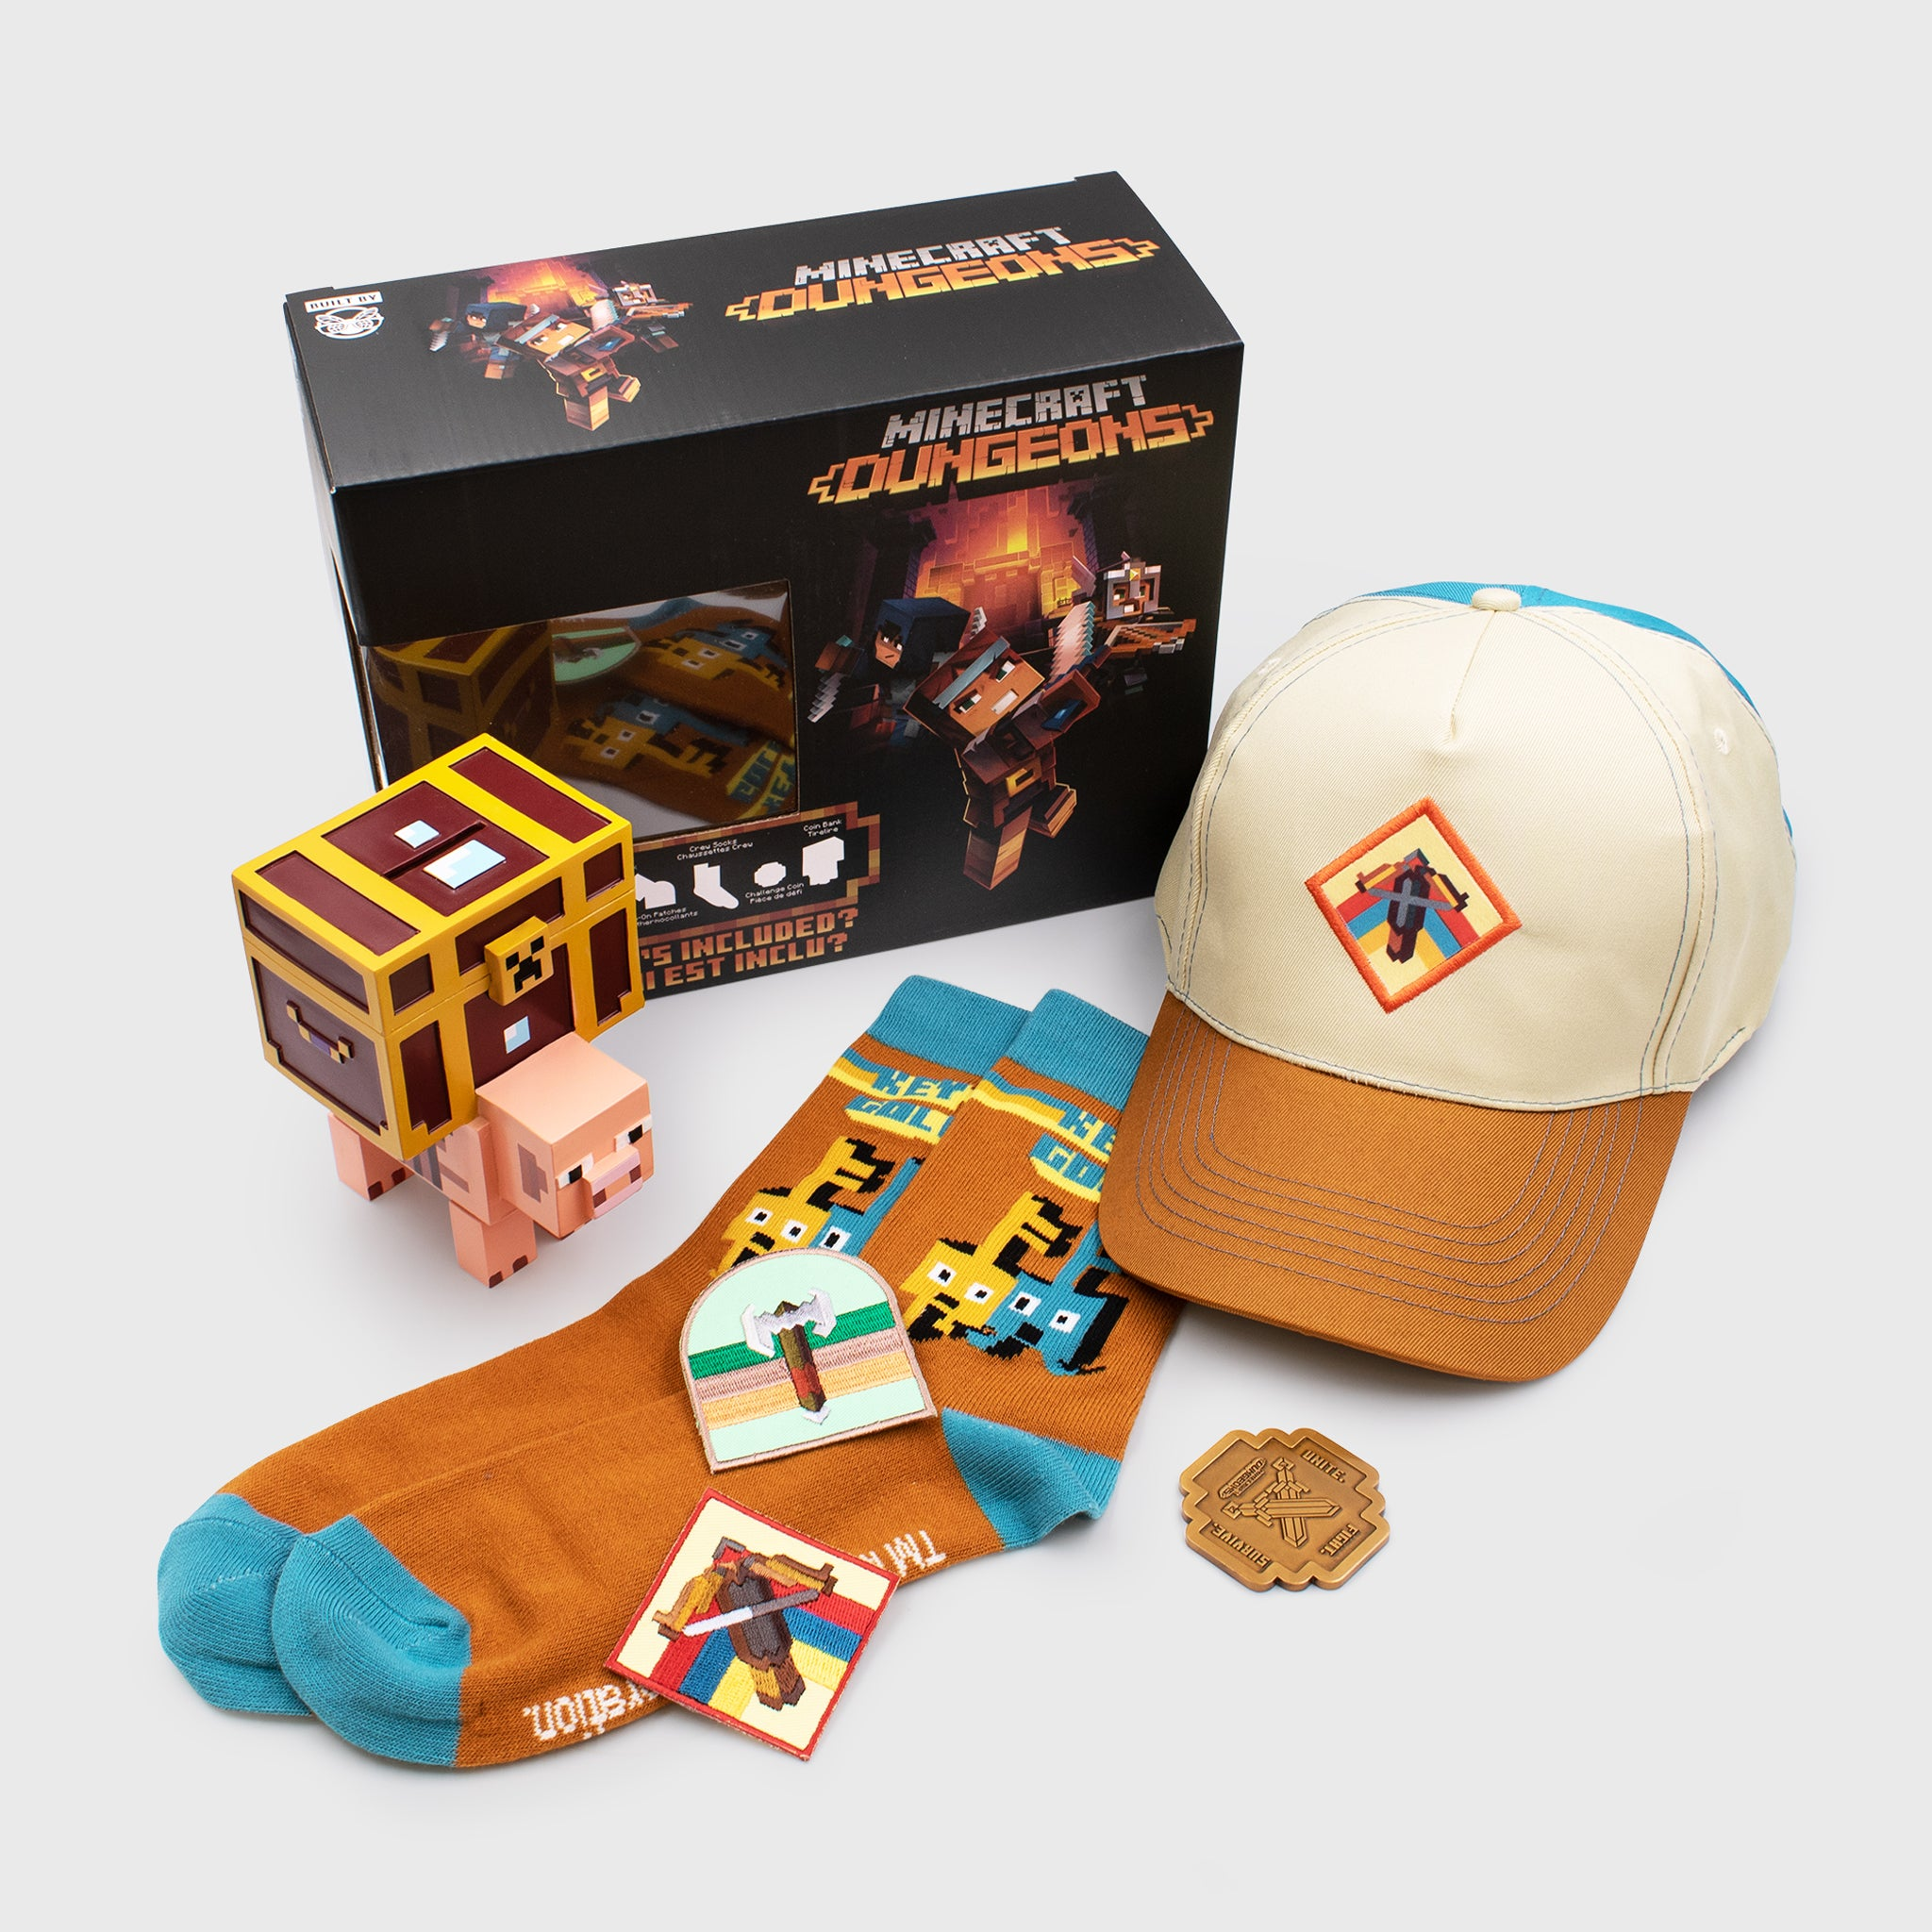 minecraft dungeons collectors box mojang hat dad cap piggy bank socks collectible coin patches culturefly